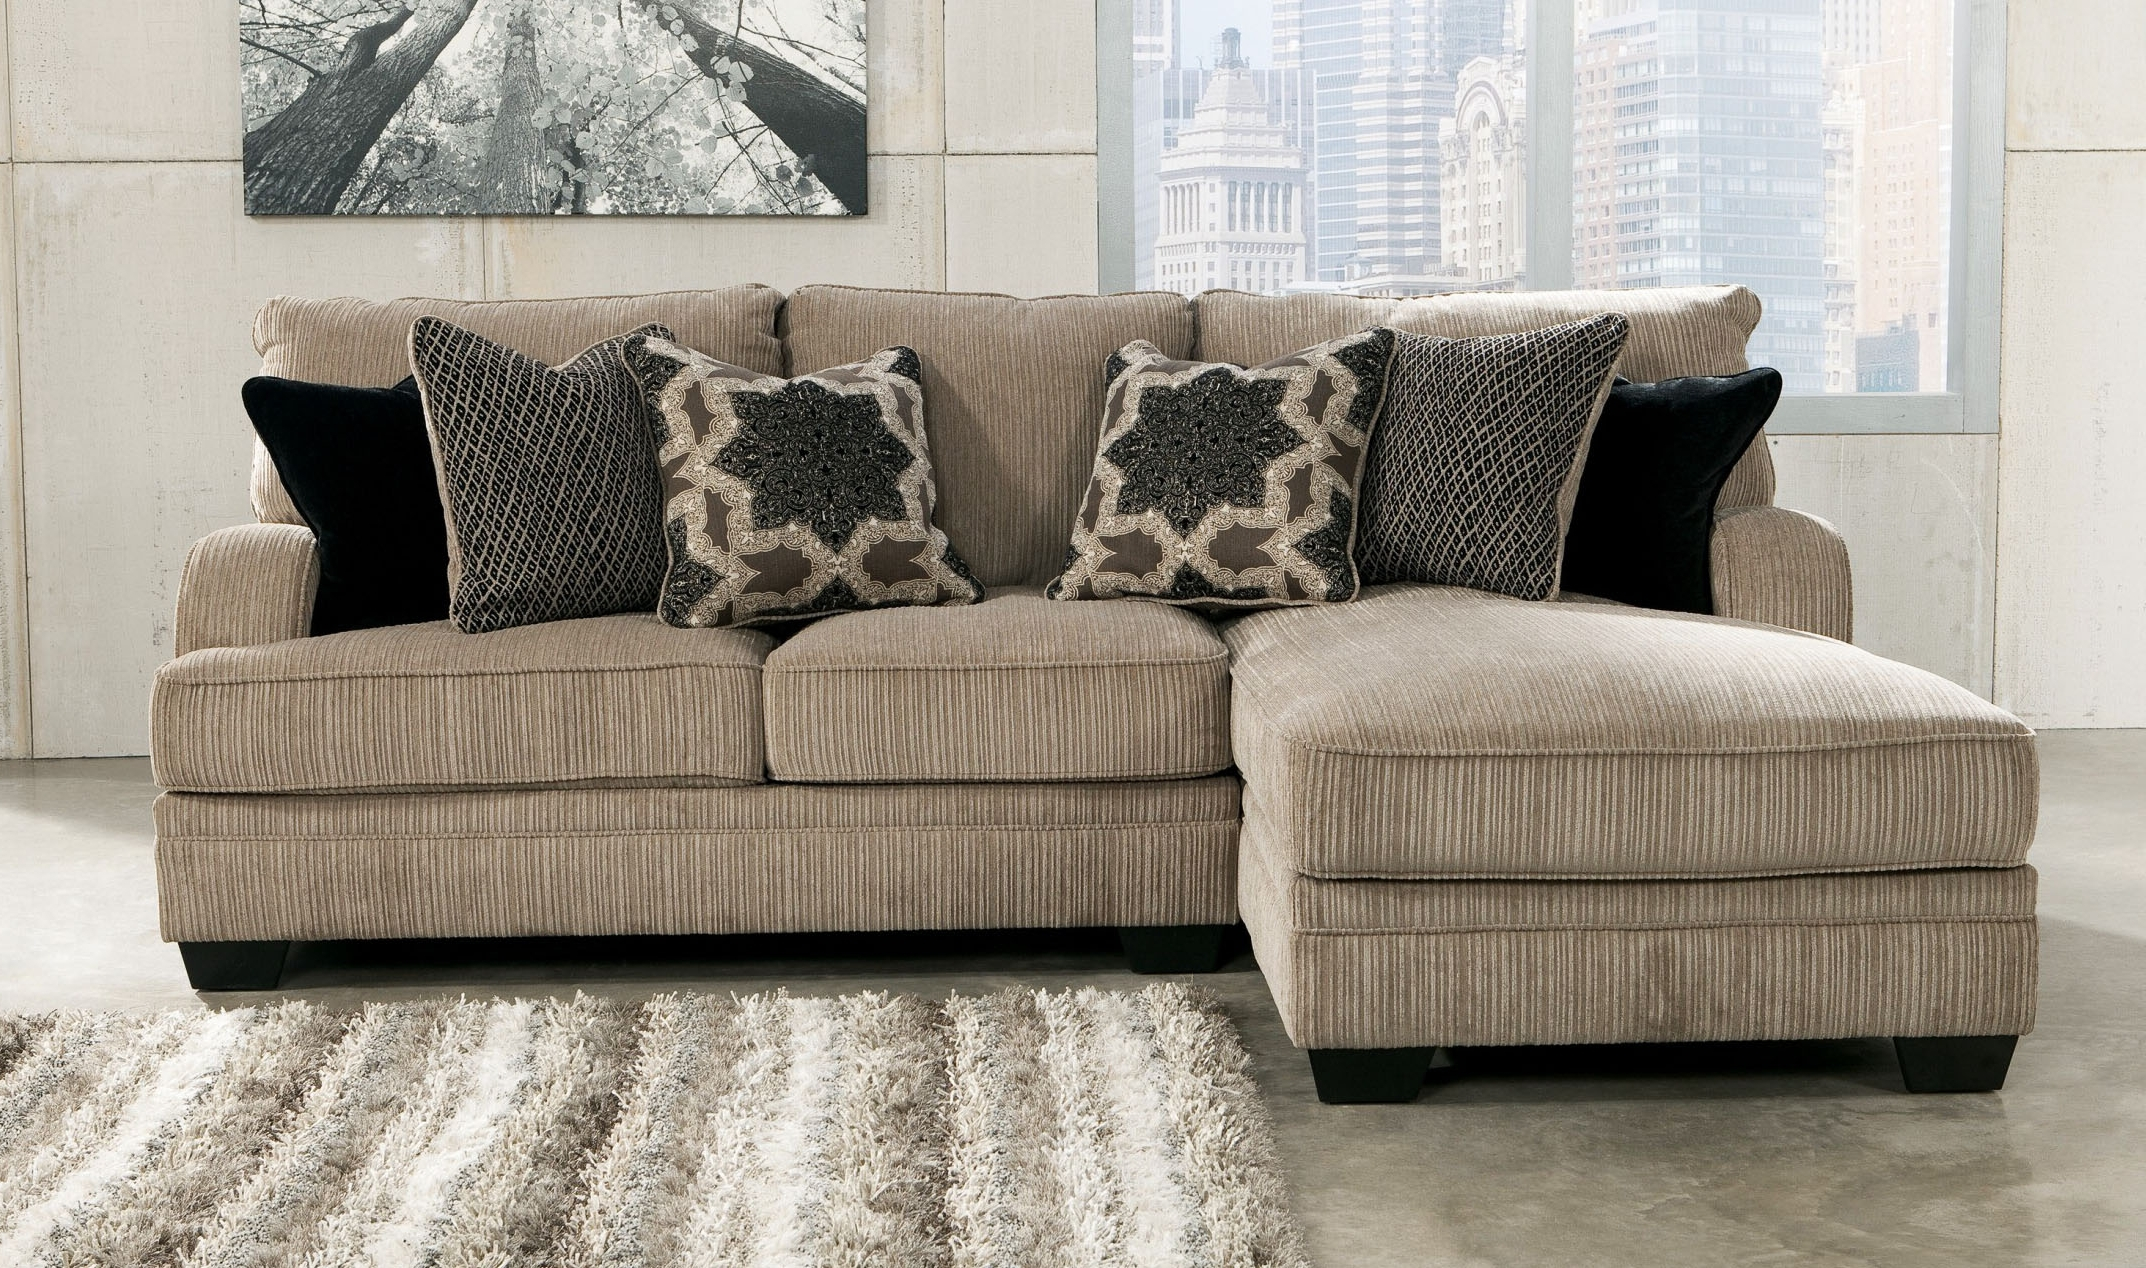 Well Known Sectional Sofas For Small Areas Intended For Modern Sectional Sofas For Small Spaces (View 20 of 20)